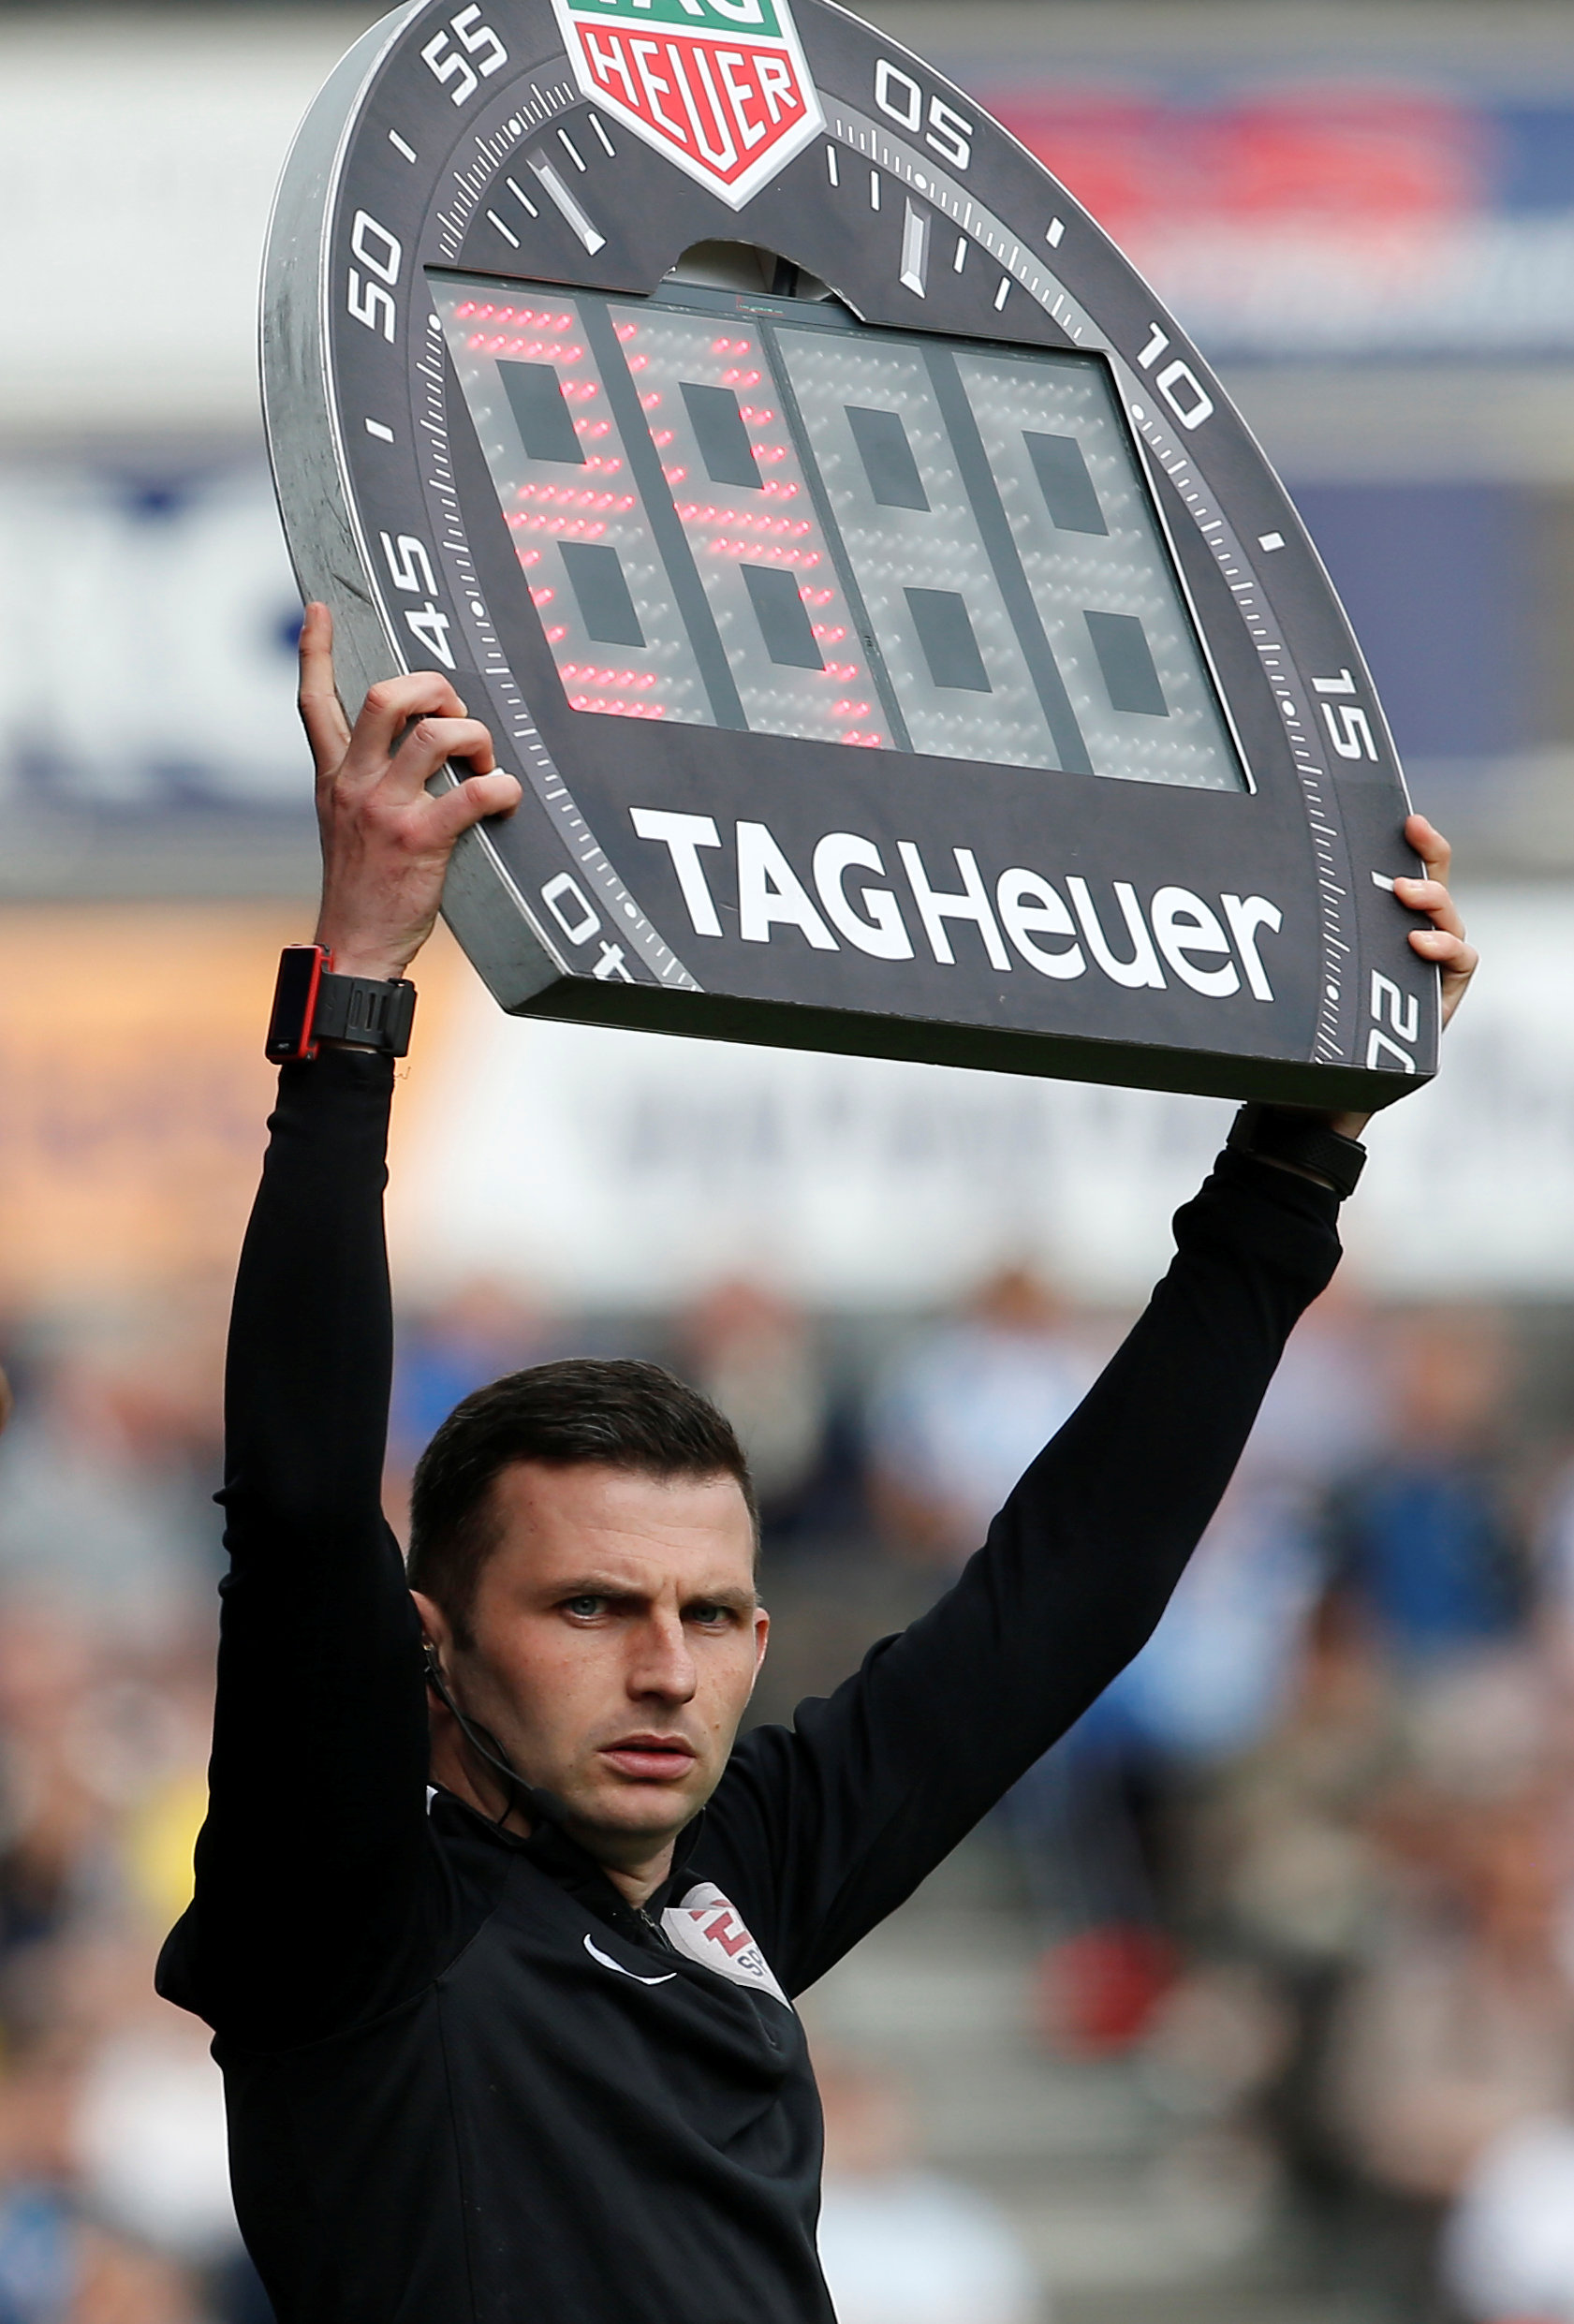 → Who was substituted off on more occasions (23) than any other player?